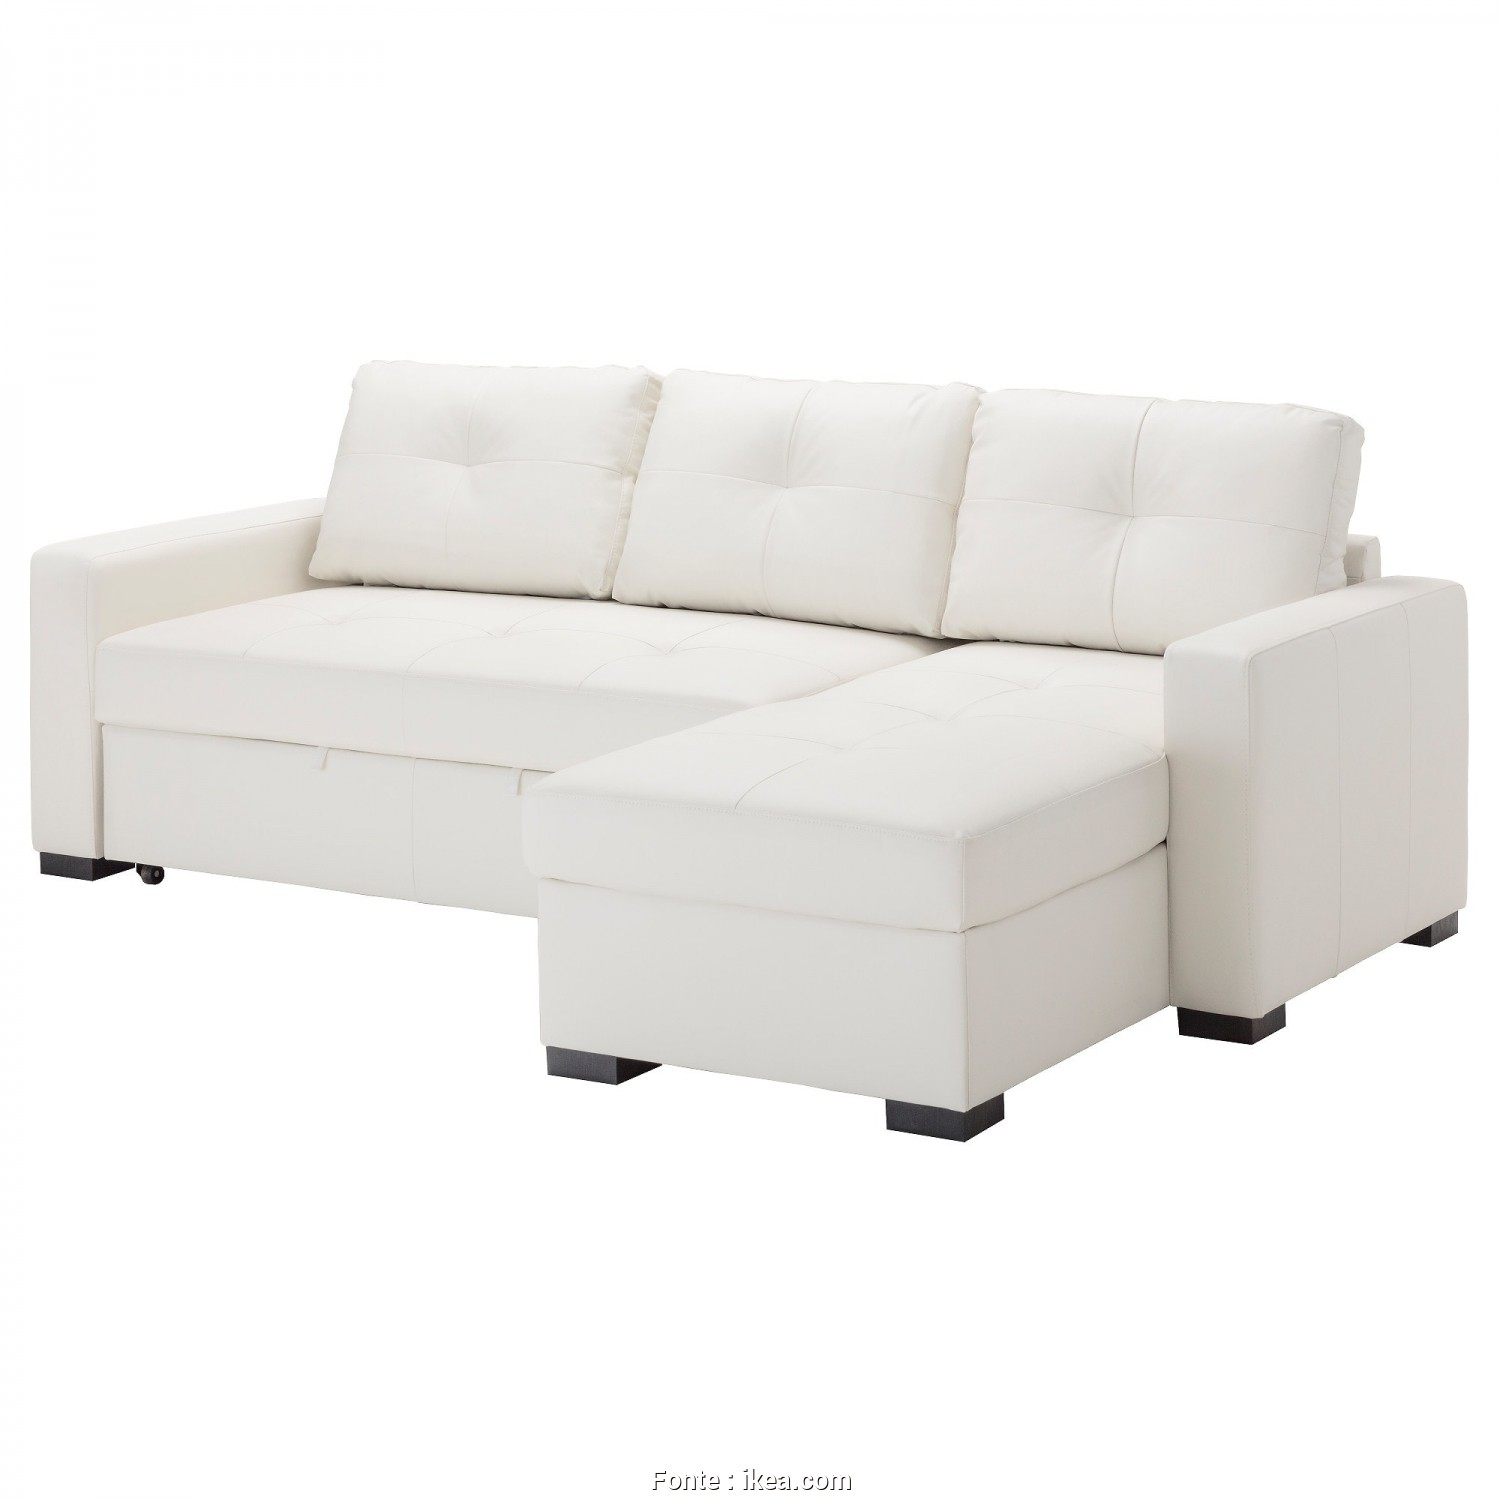 Backabro Ikea Beograd, Deale IKEA RAGUNDA Corner Sofa-Bed With Storage Sofa, Chaise Longue, Double, In